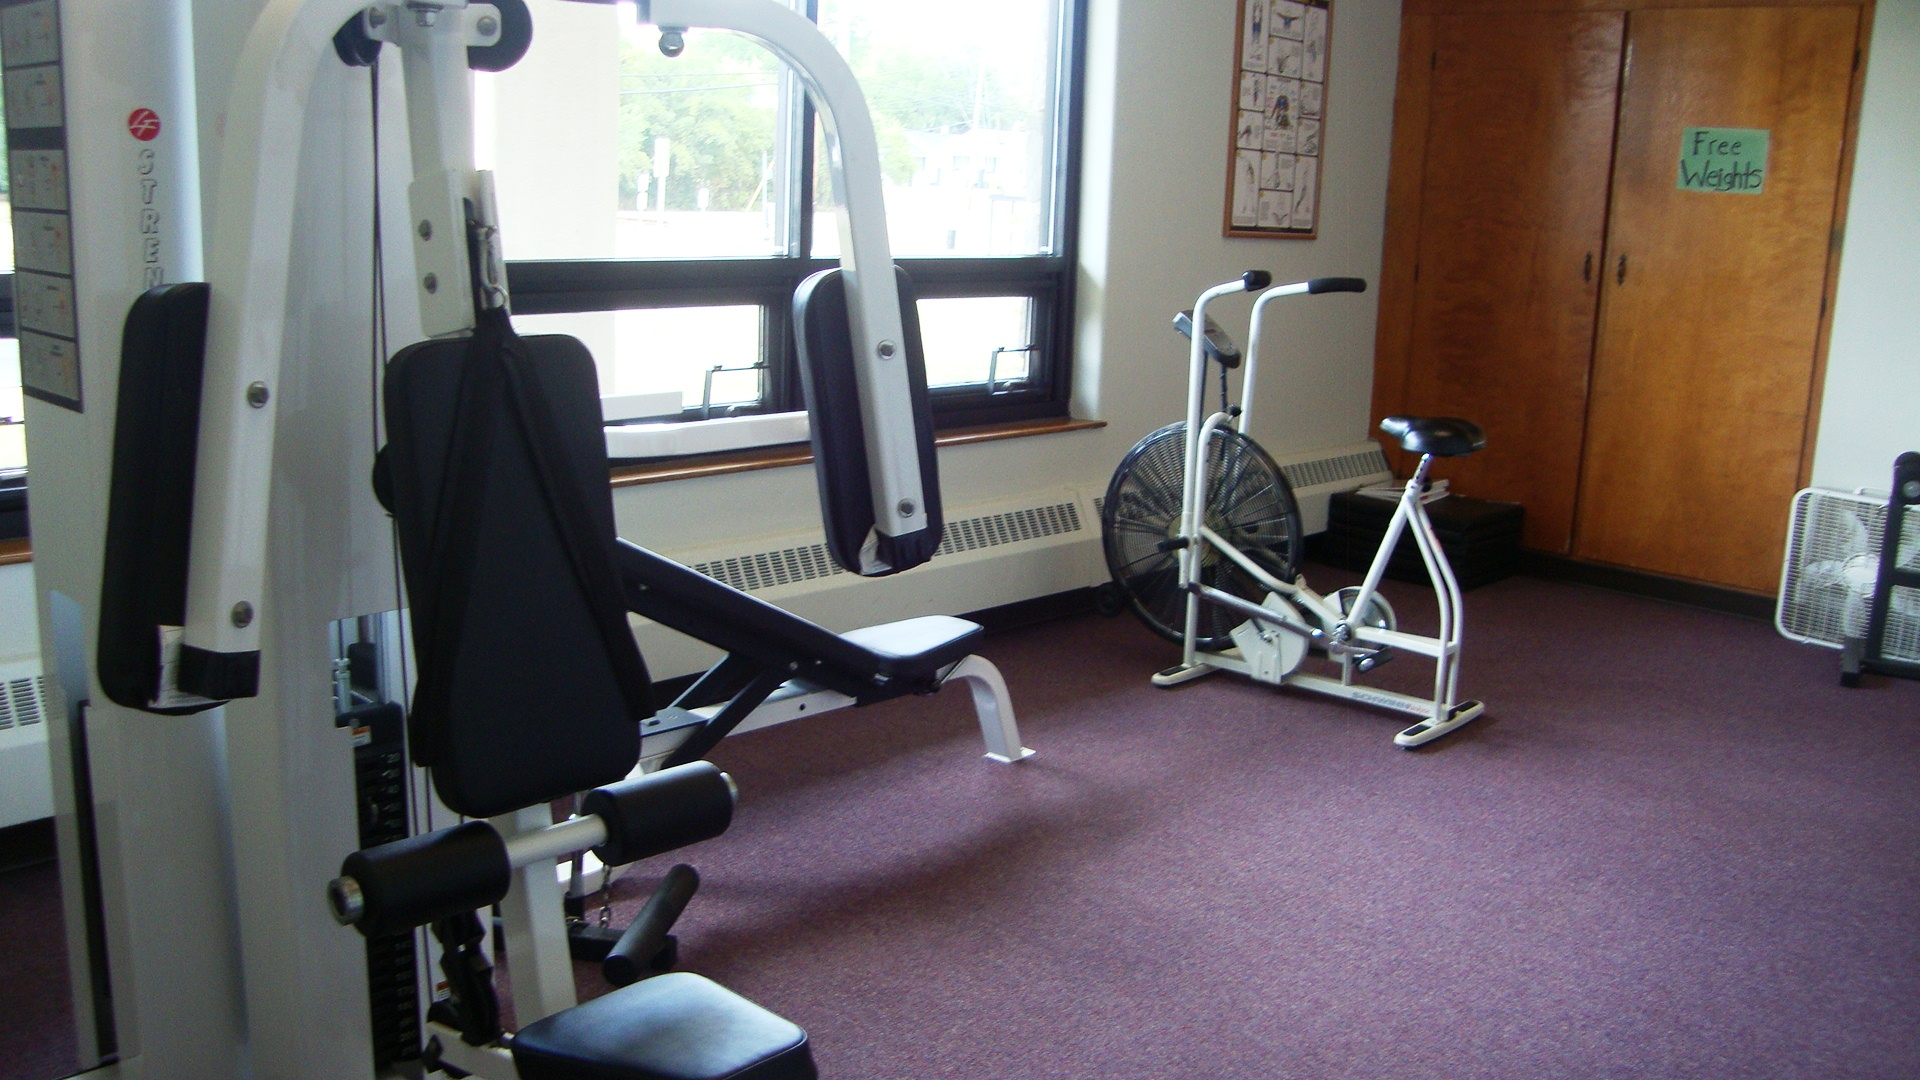 The Oak exercise room